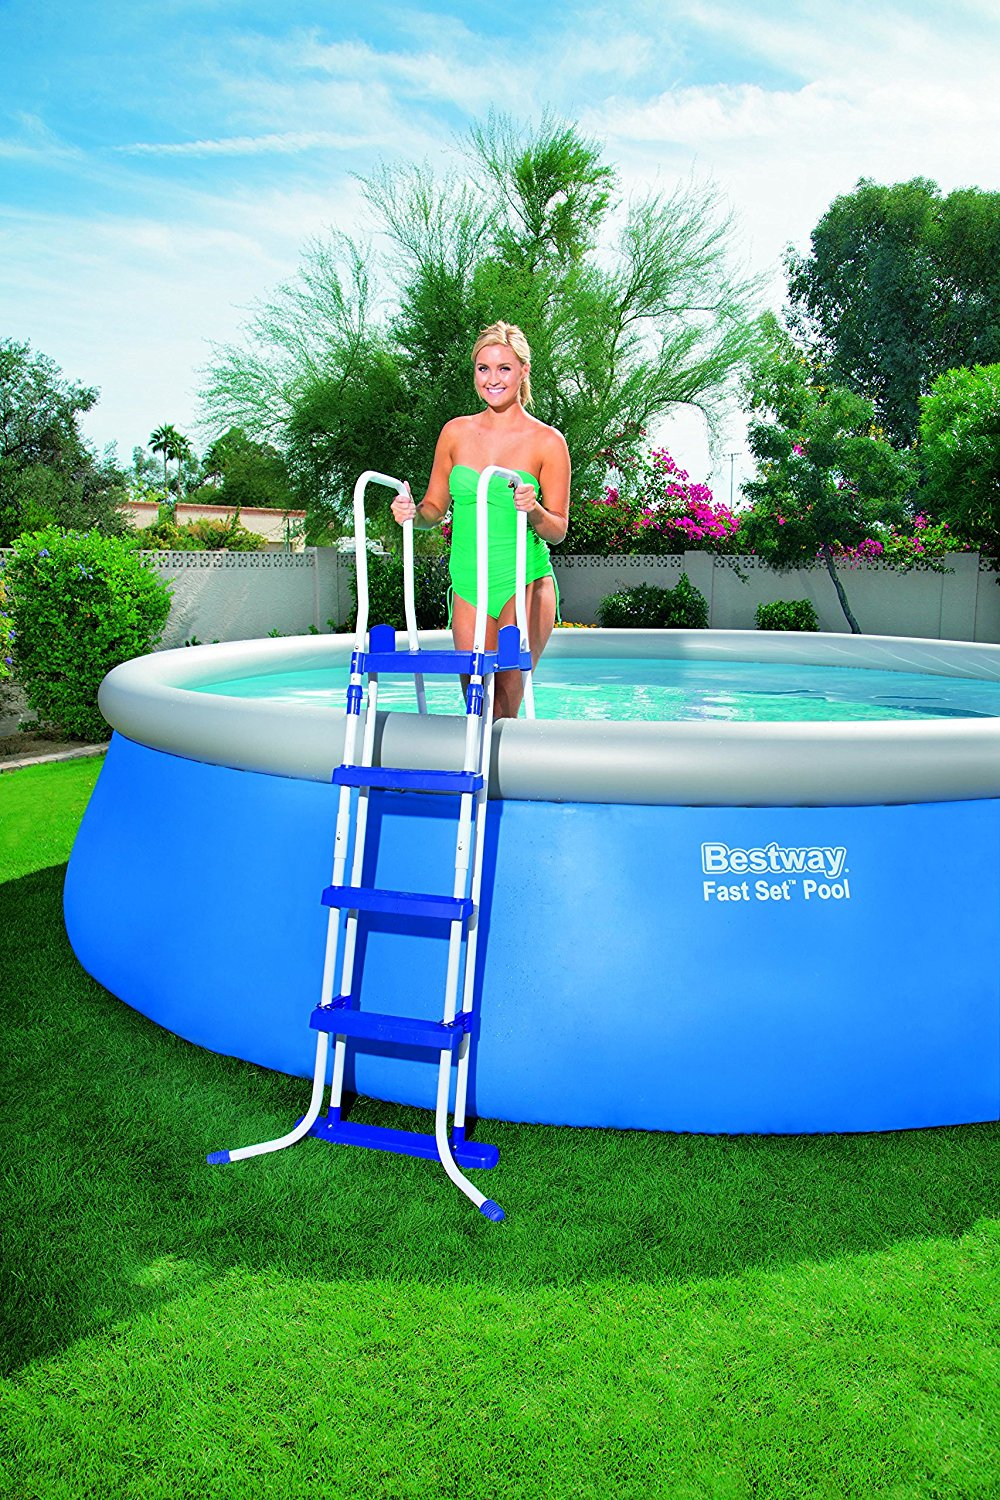 Bestway 14ft rattan swimming pool filter pump ladder garden steel pro frame set ebay - Steel frame pool ...